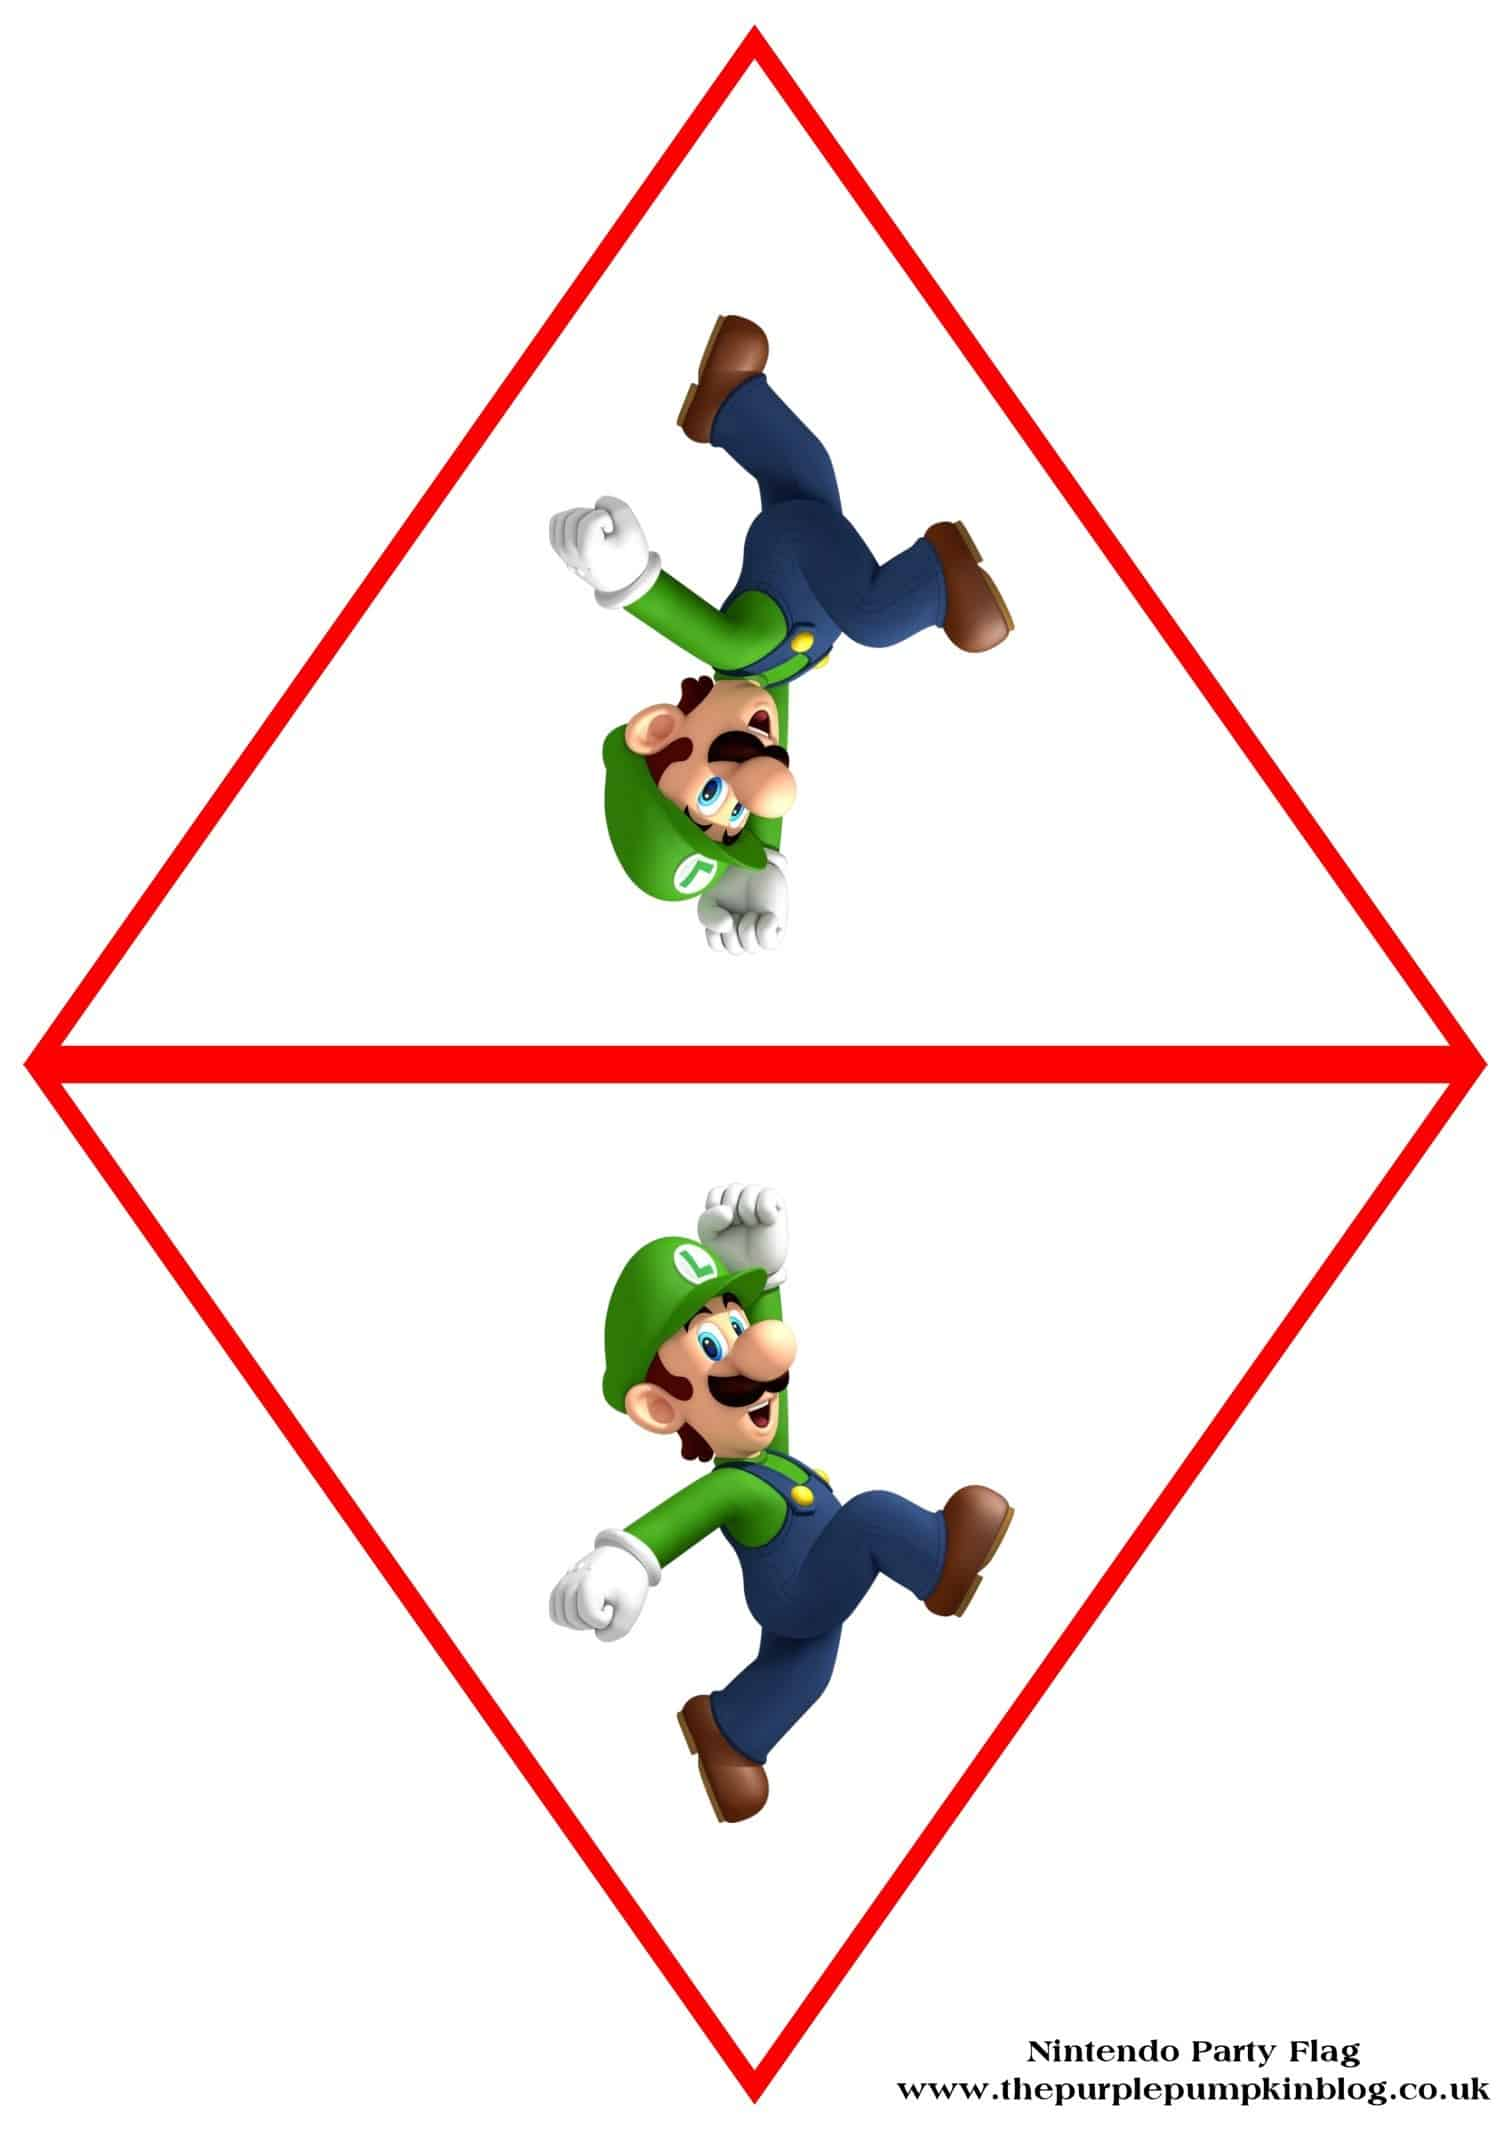 nintendo-party-flag-luigi